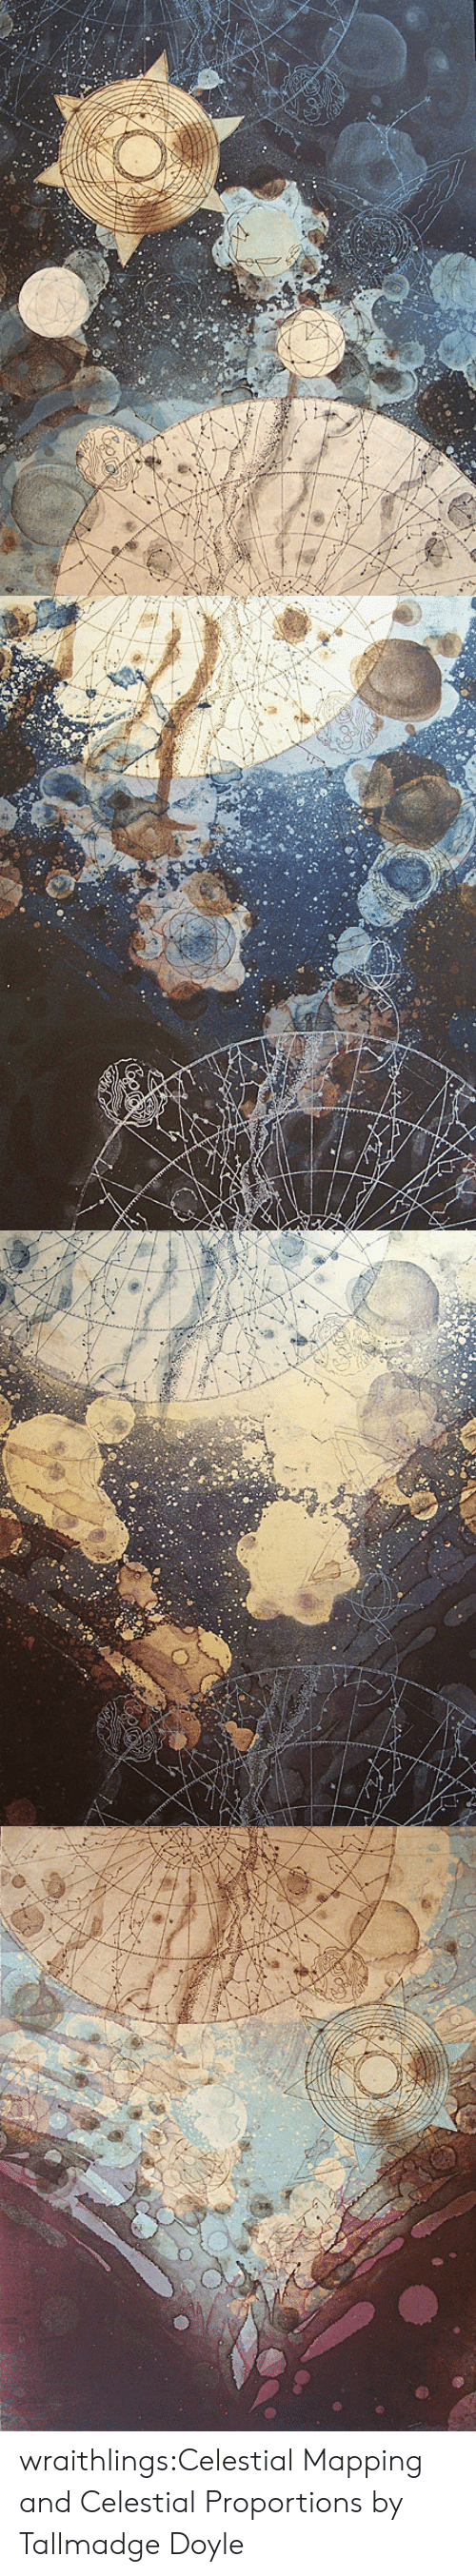 Tumblr, Work, and Blog: wraithlings:Celestial Mapping and Celestial Proportions by Tallmadge Doyle